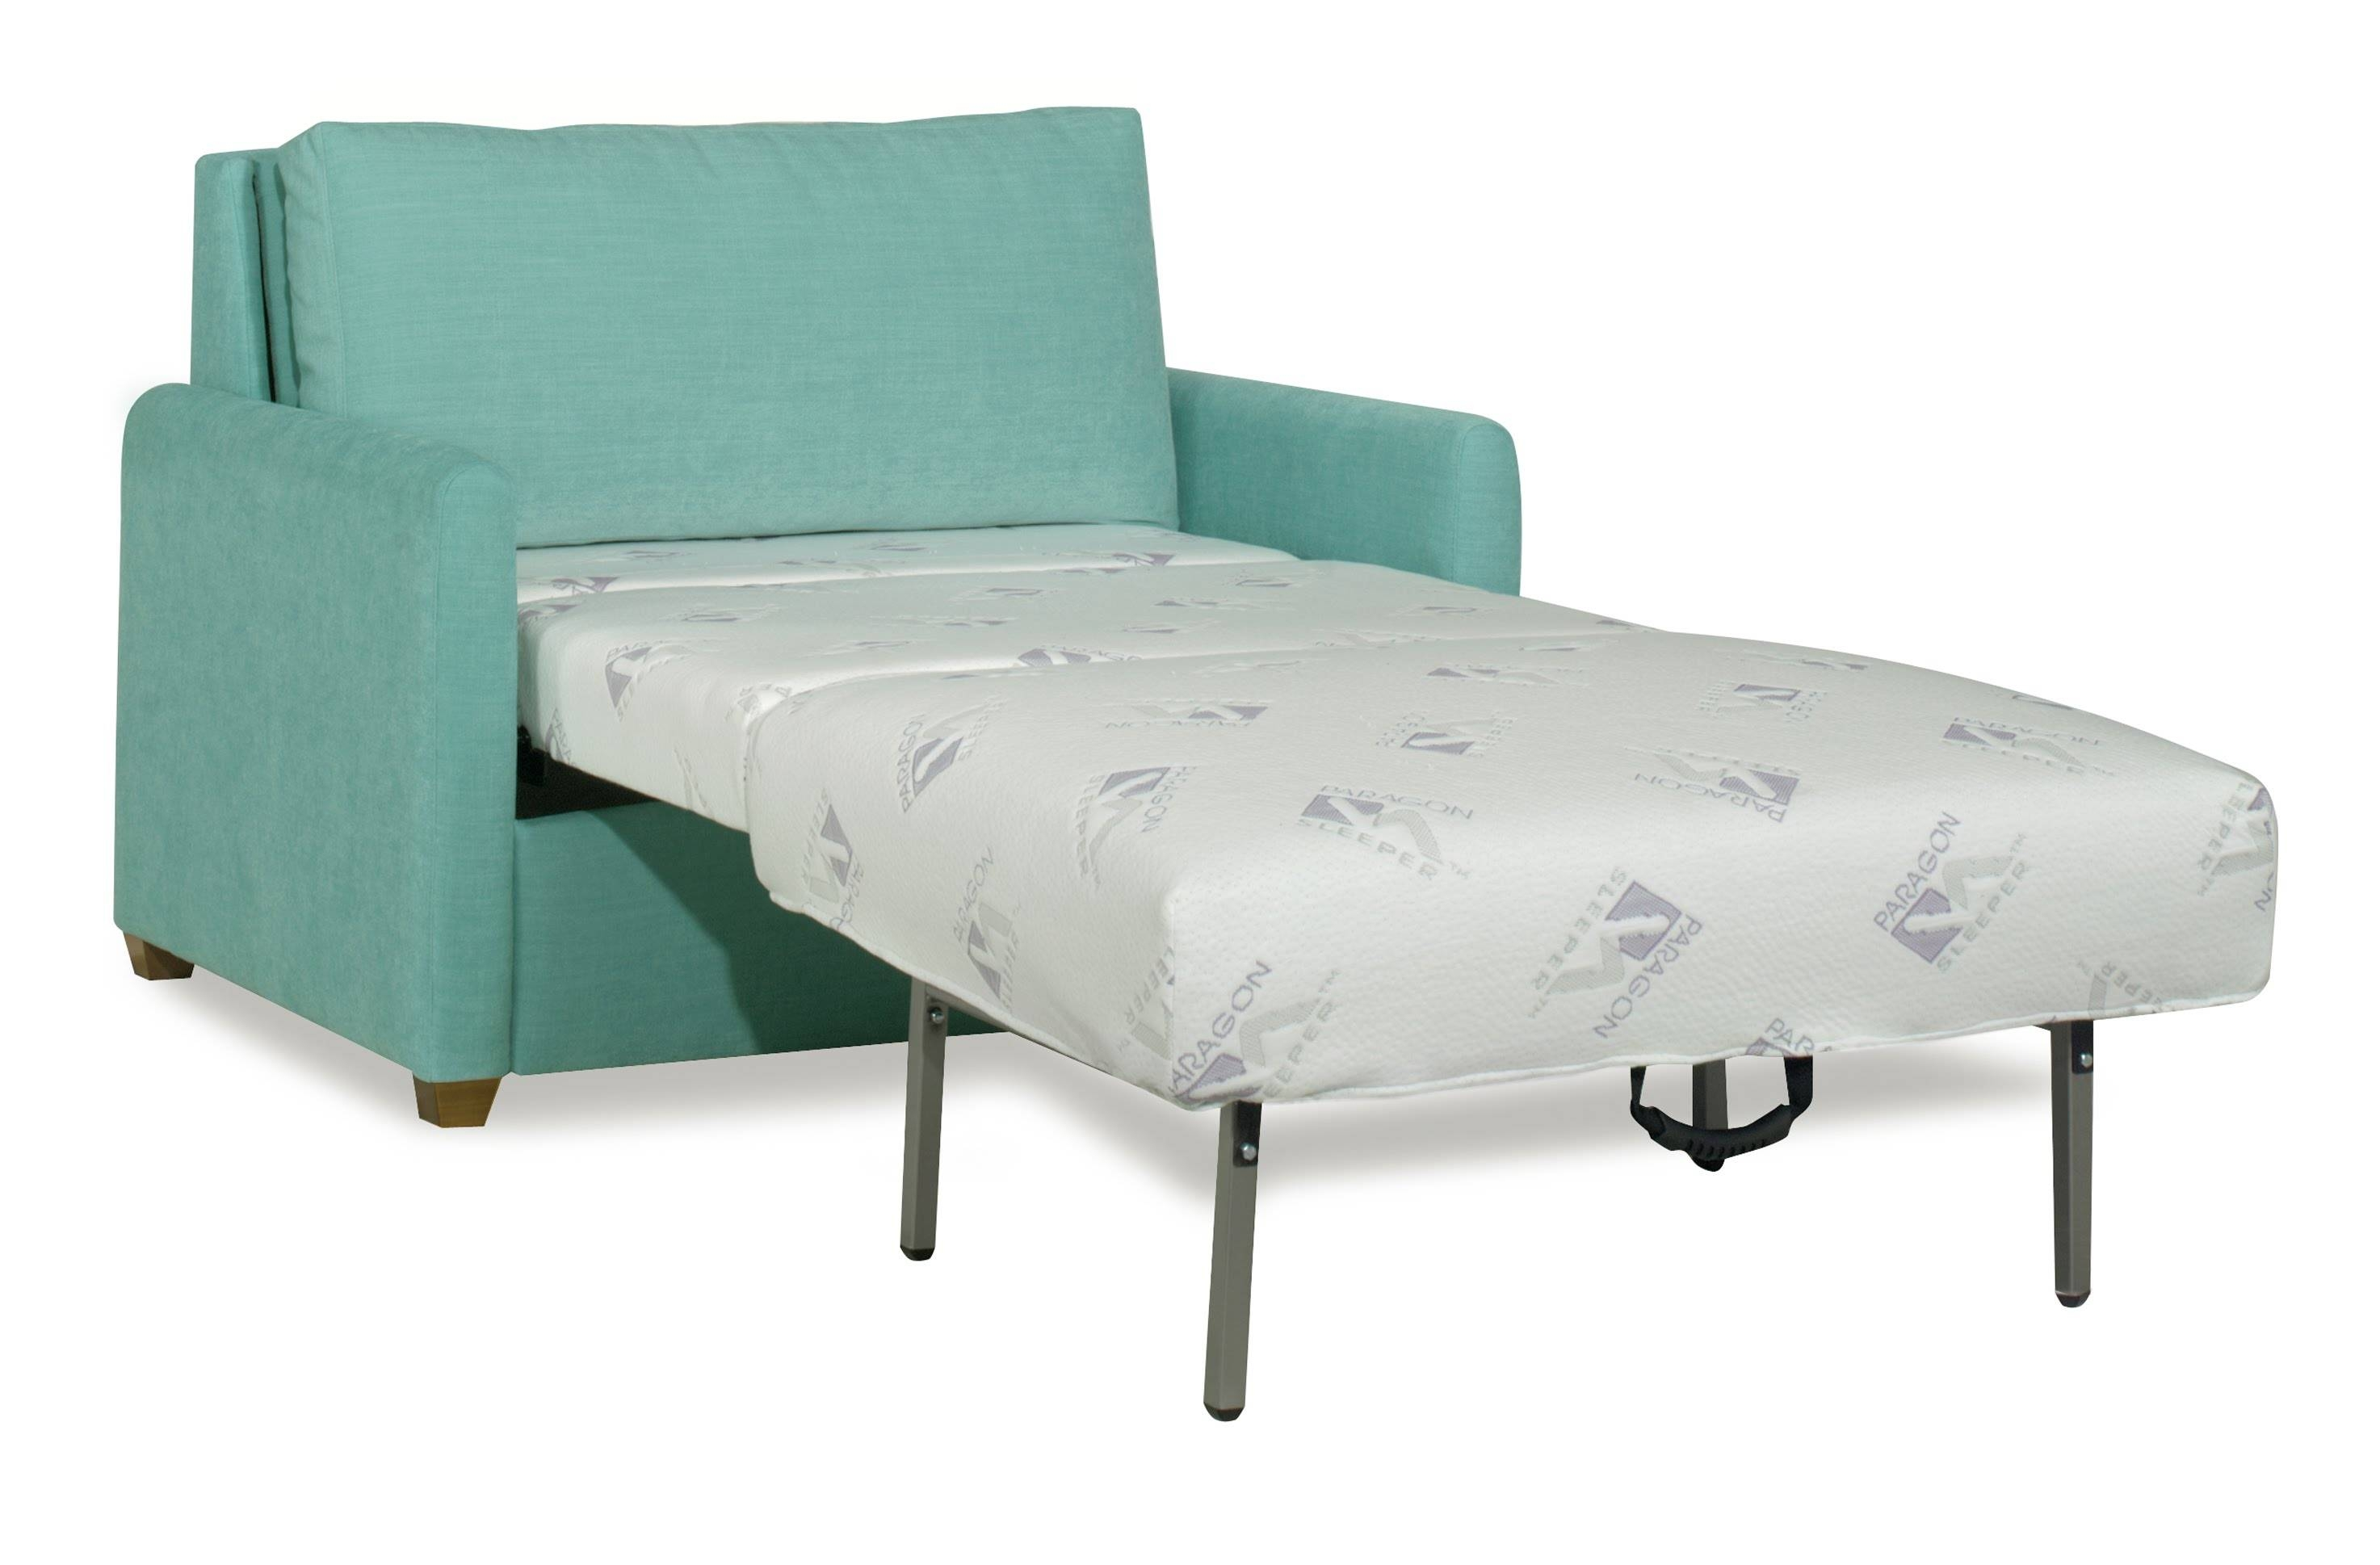 Twin Sleeper Chair | Twin Sleeper Chair Crate And Barrel - Youtube within Crate and Barrel Sofa Sleepers (Image 14 of 15)